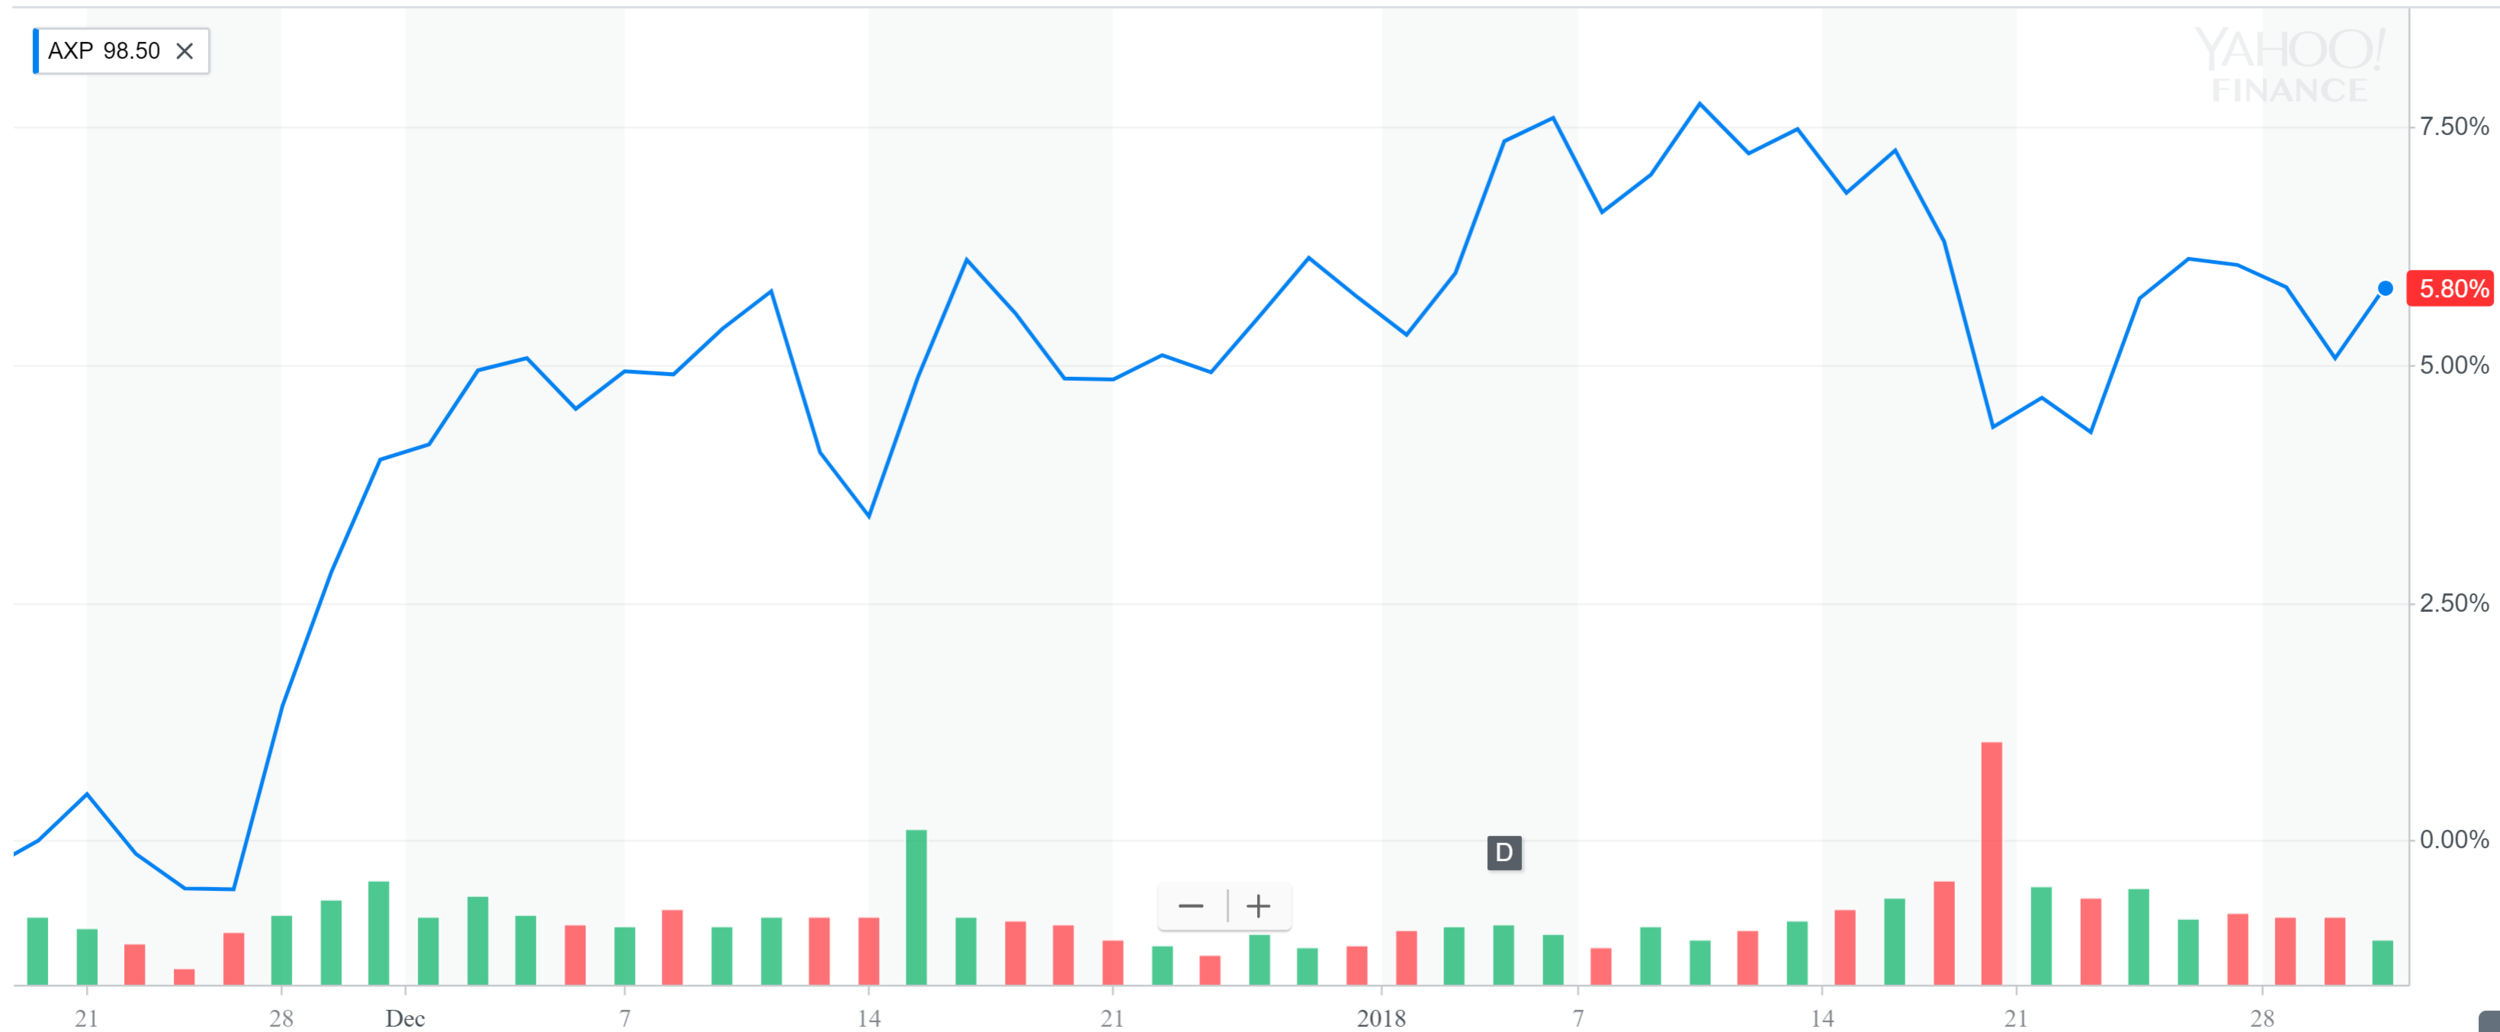 AmEx pushing 5.8% since day of purchase